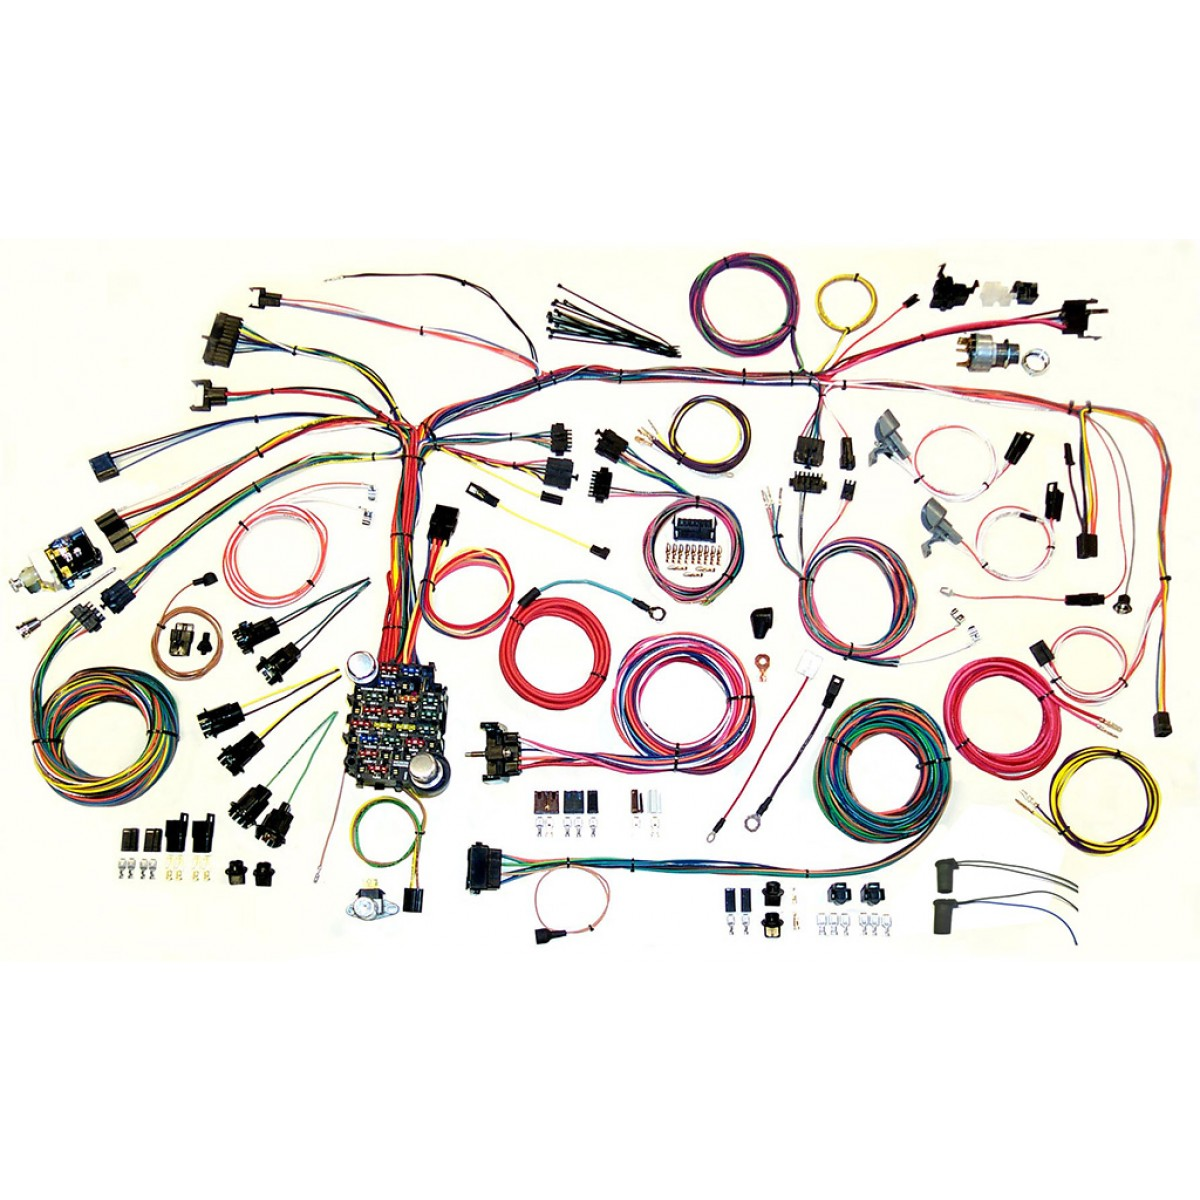 firebird wiring harness kit image wiring diagram 1967 1968 pontiac firbird complete wiring harness kit 1967 on 69 firebird wiring harness kit